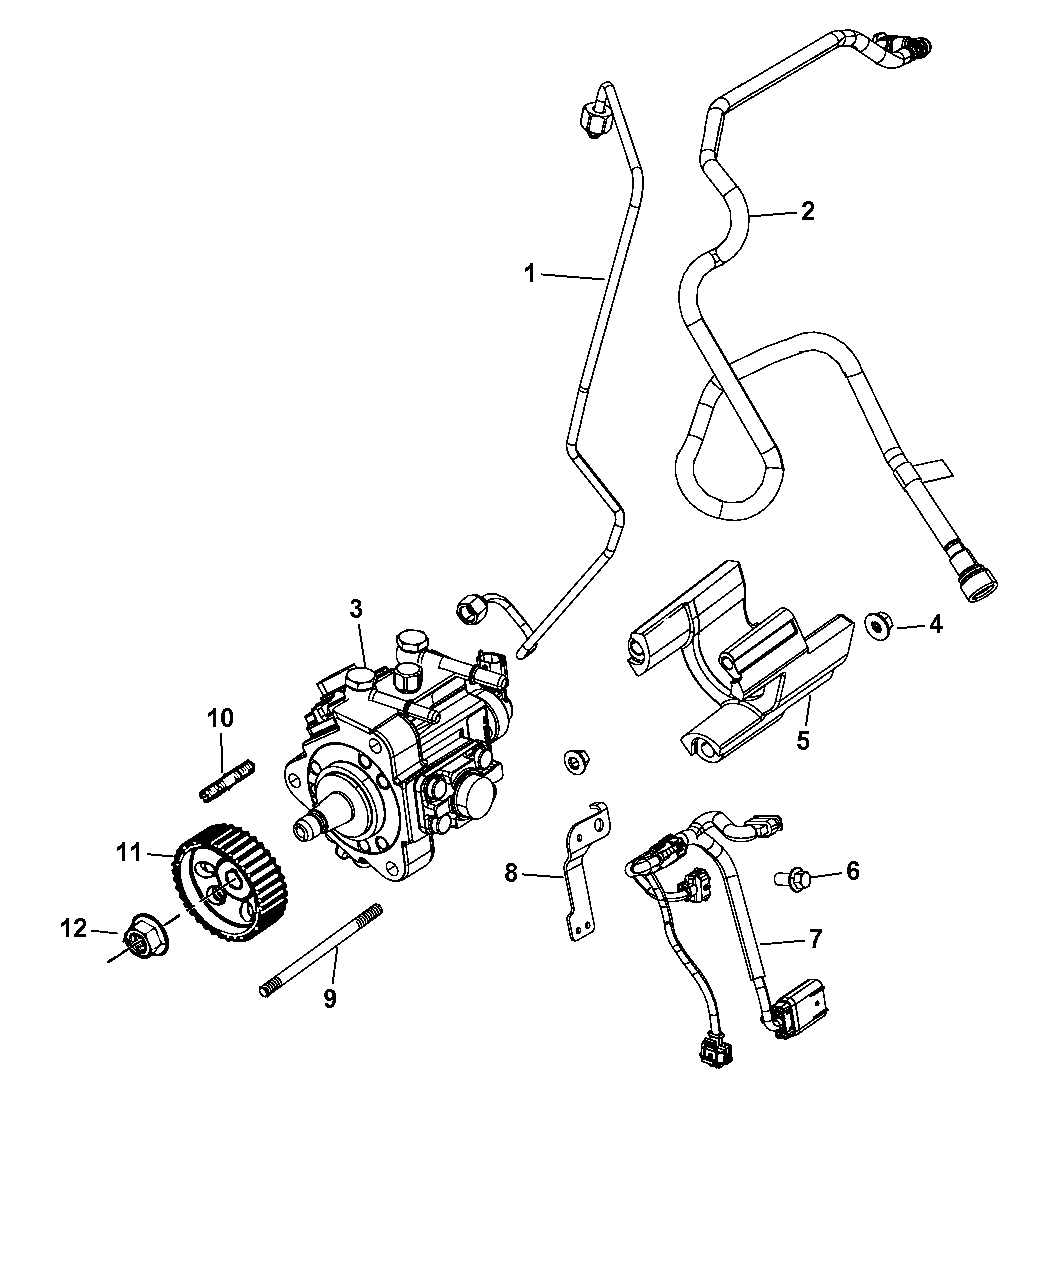 Jeep Wrangler Fuel Injection Pump